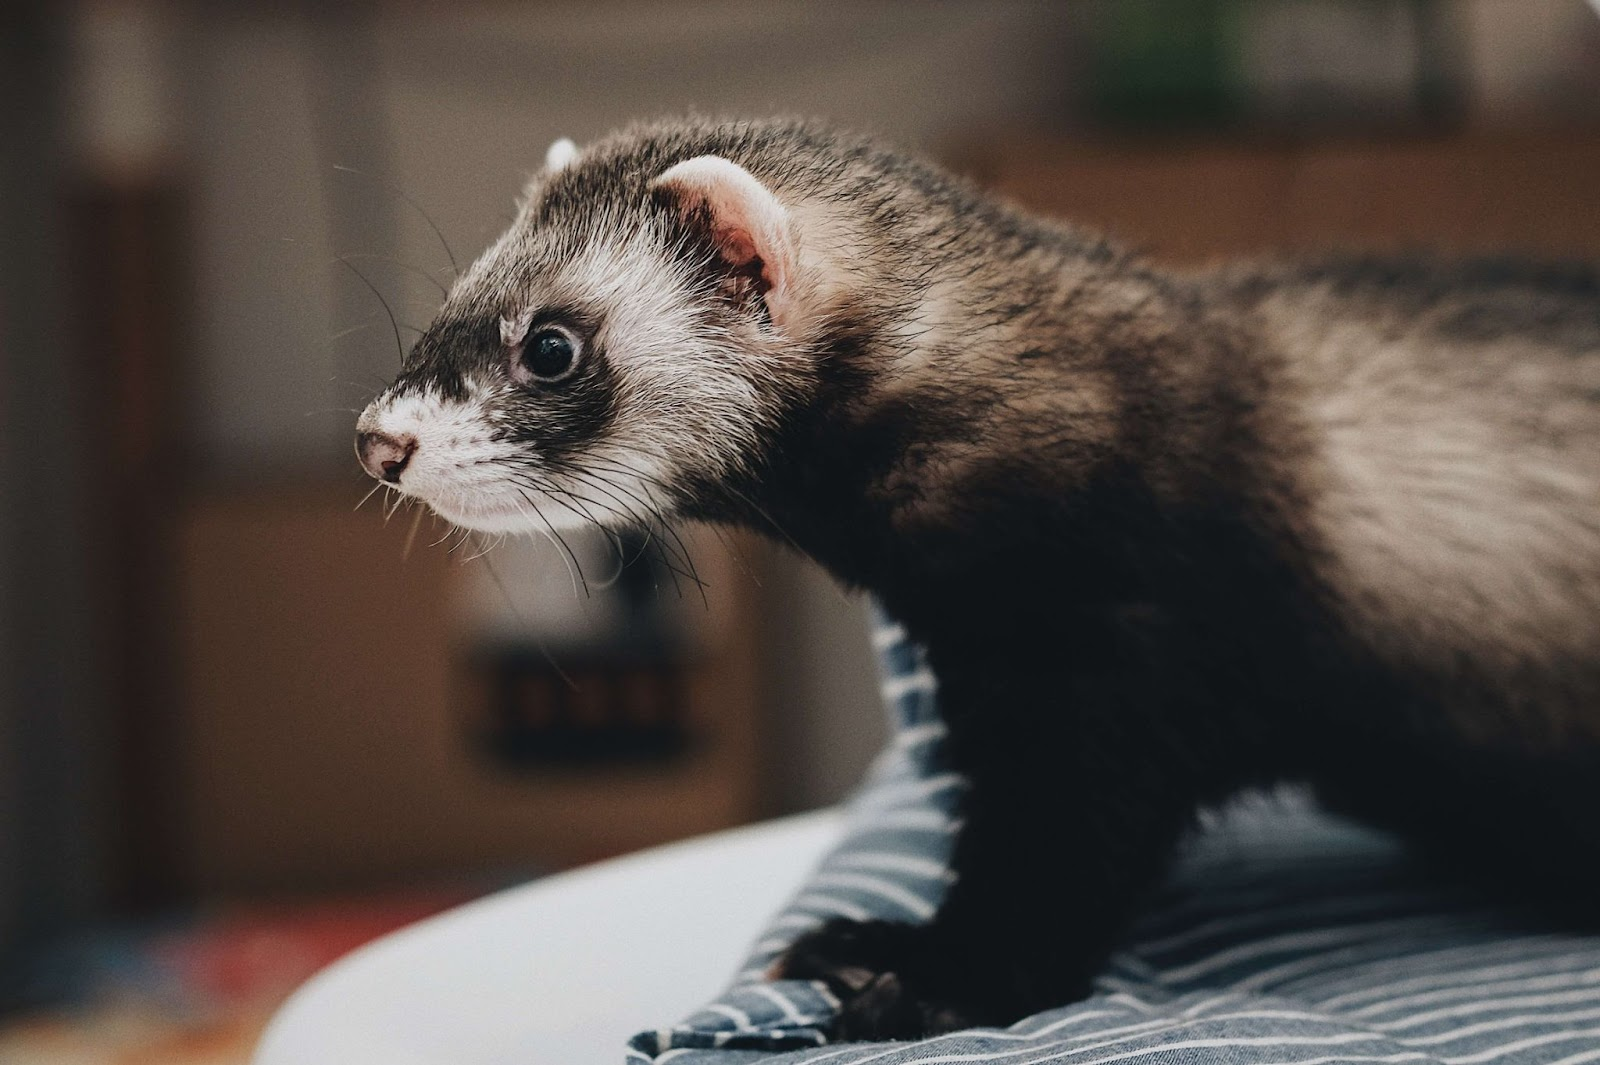 Can Ferrets Eat Avocados?